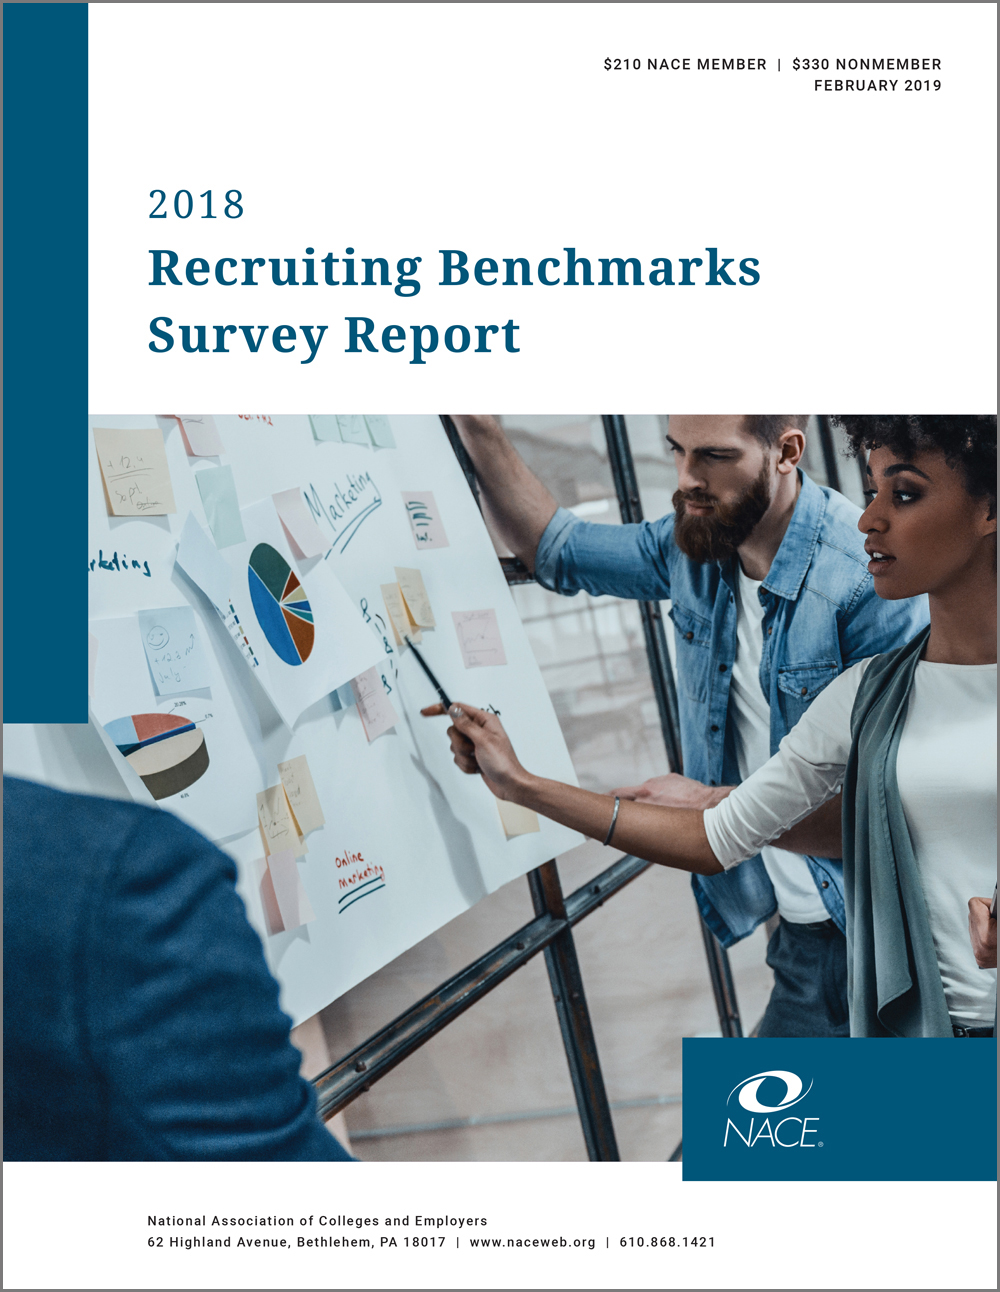 Recruiting Benchmarks Survey Report 2018